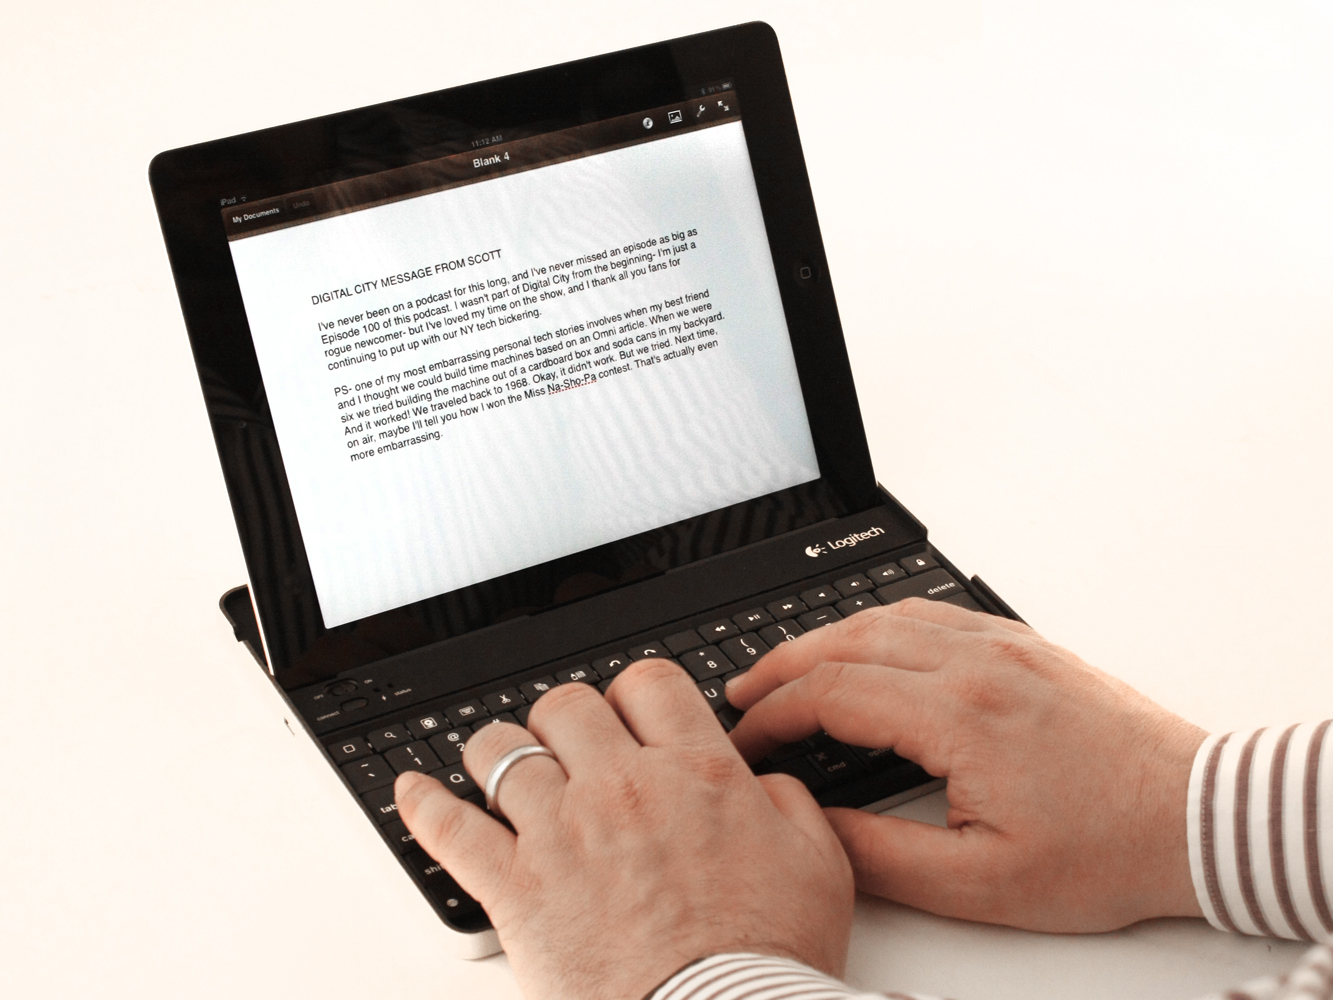 iPad 2: does it even need a keyboard to overtake laptops?